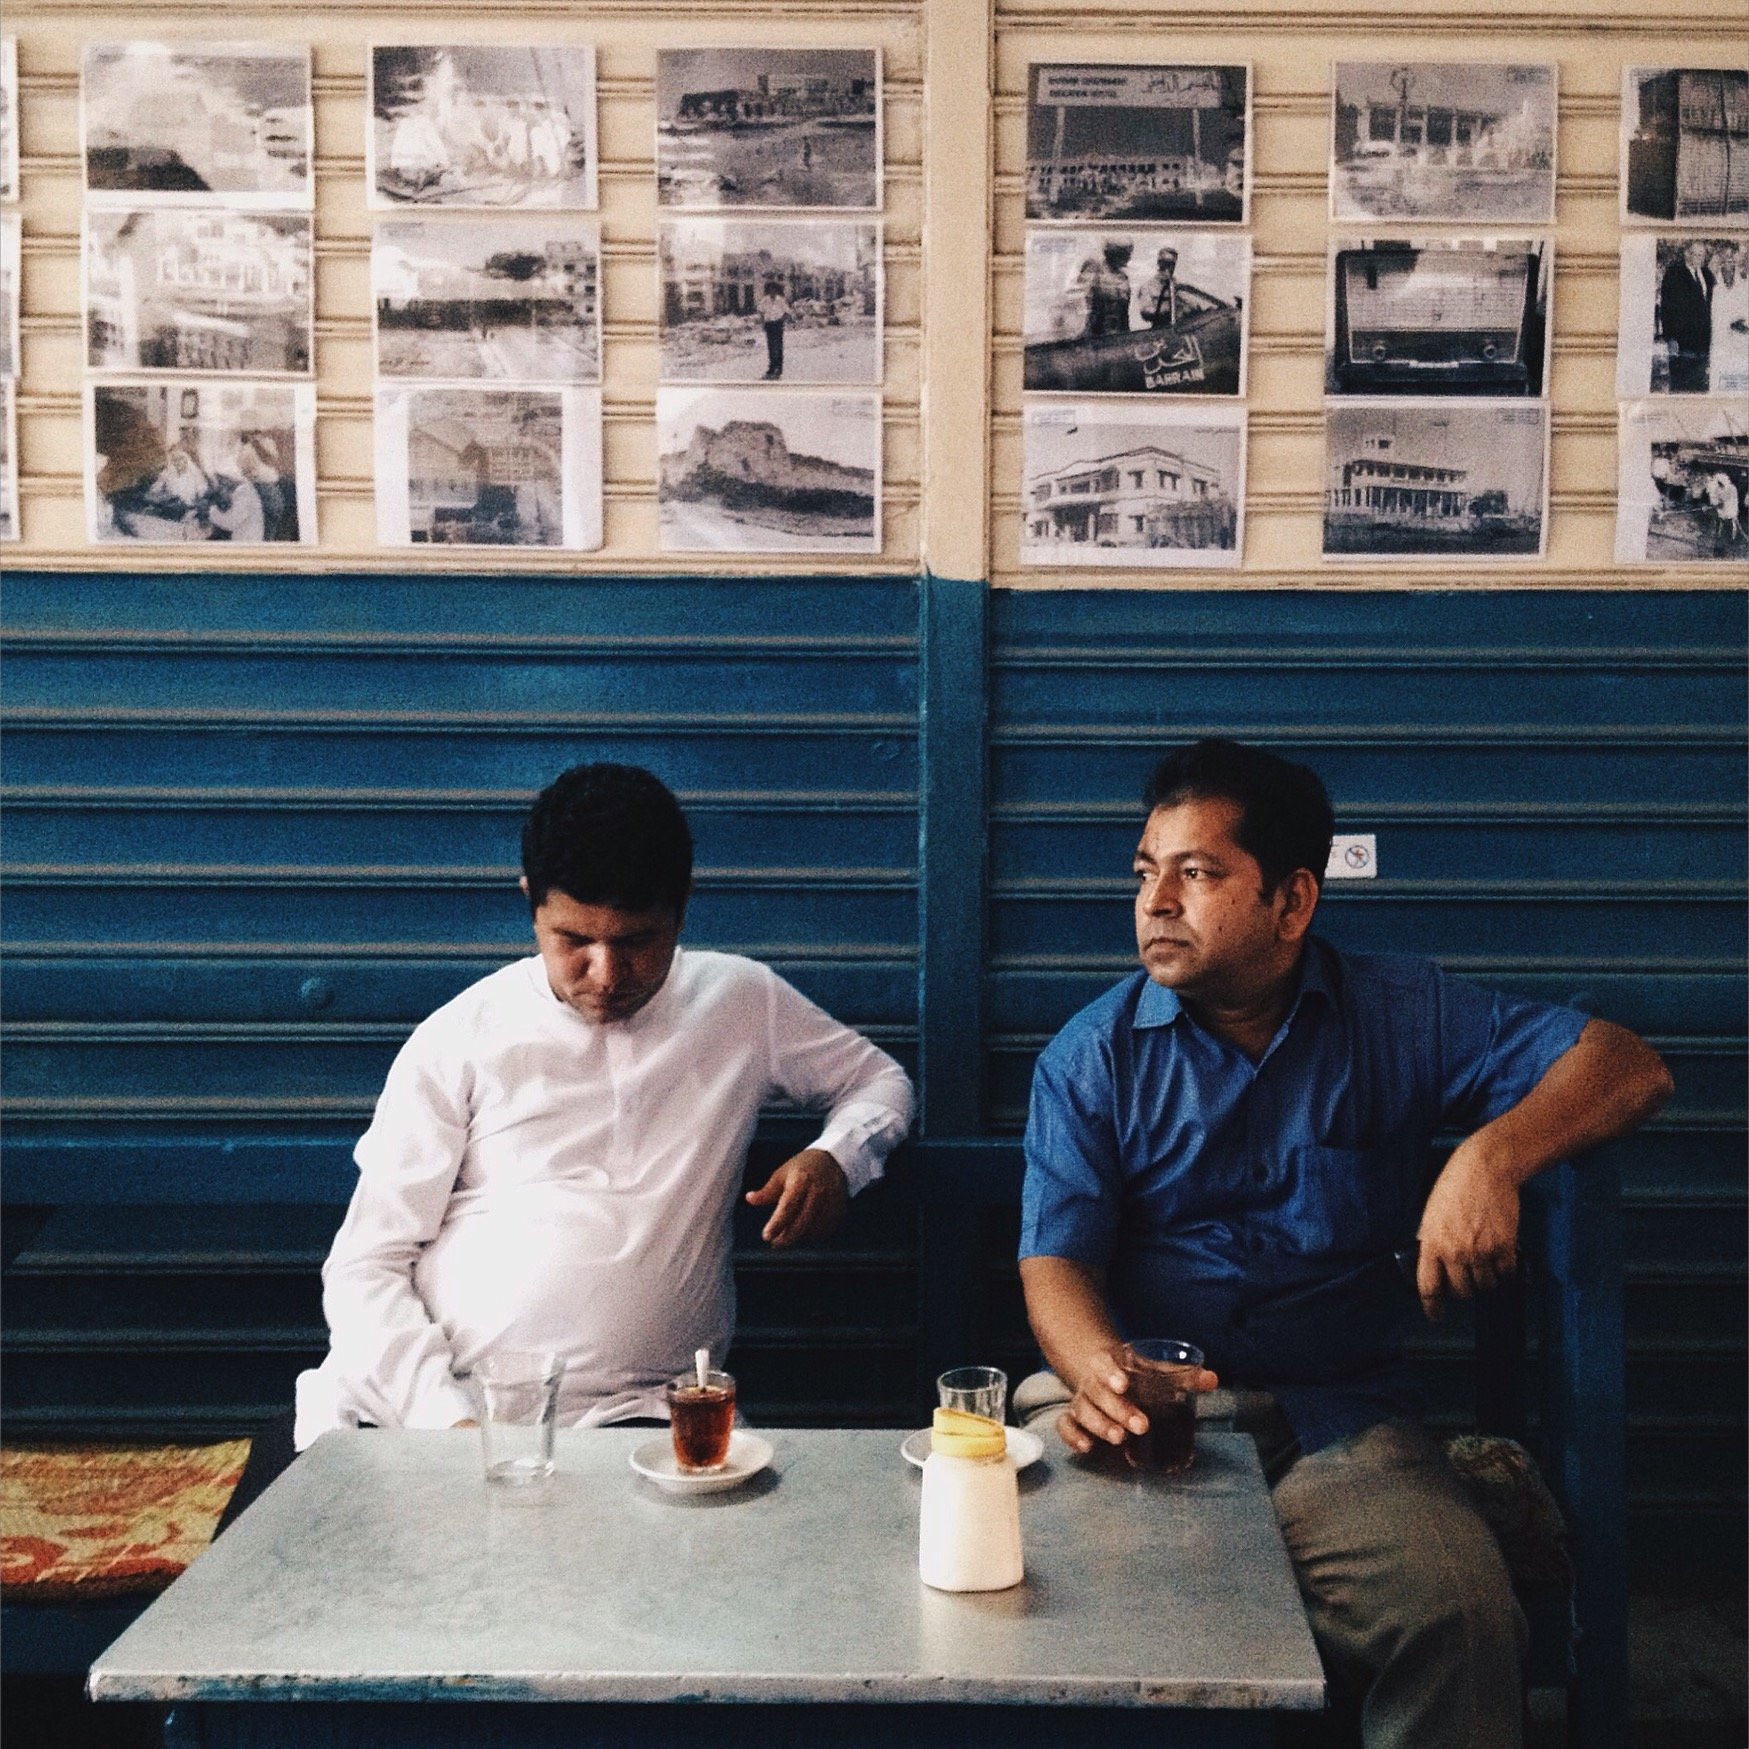 On holidays or after work, workers find refuge in local cafes, drinking tea and socializing.